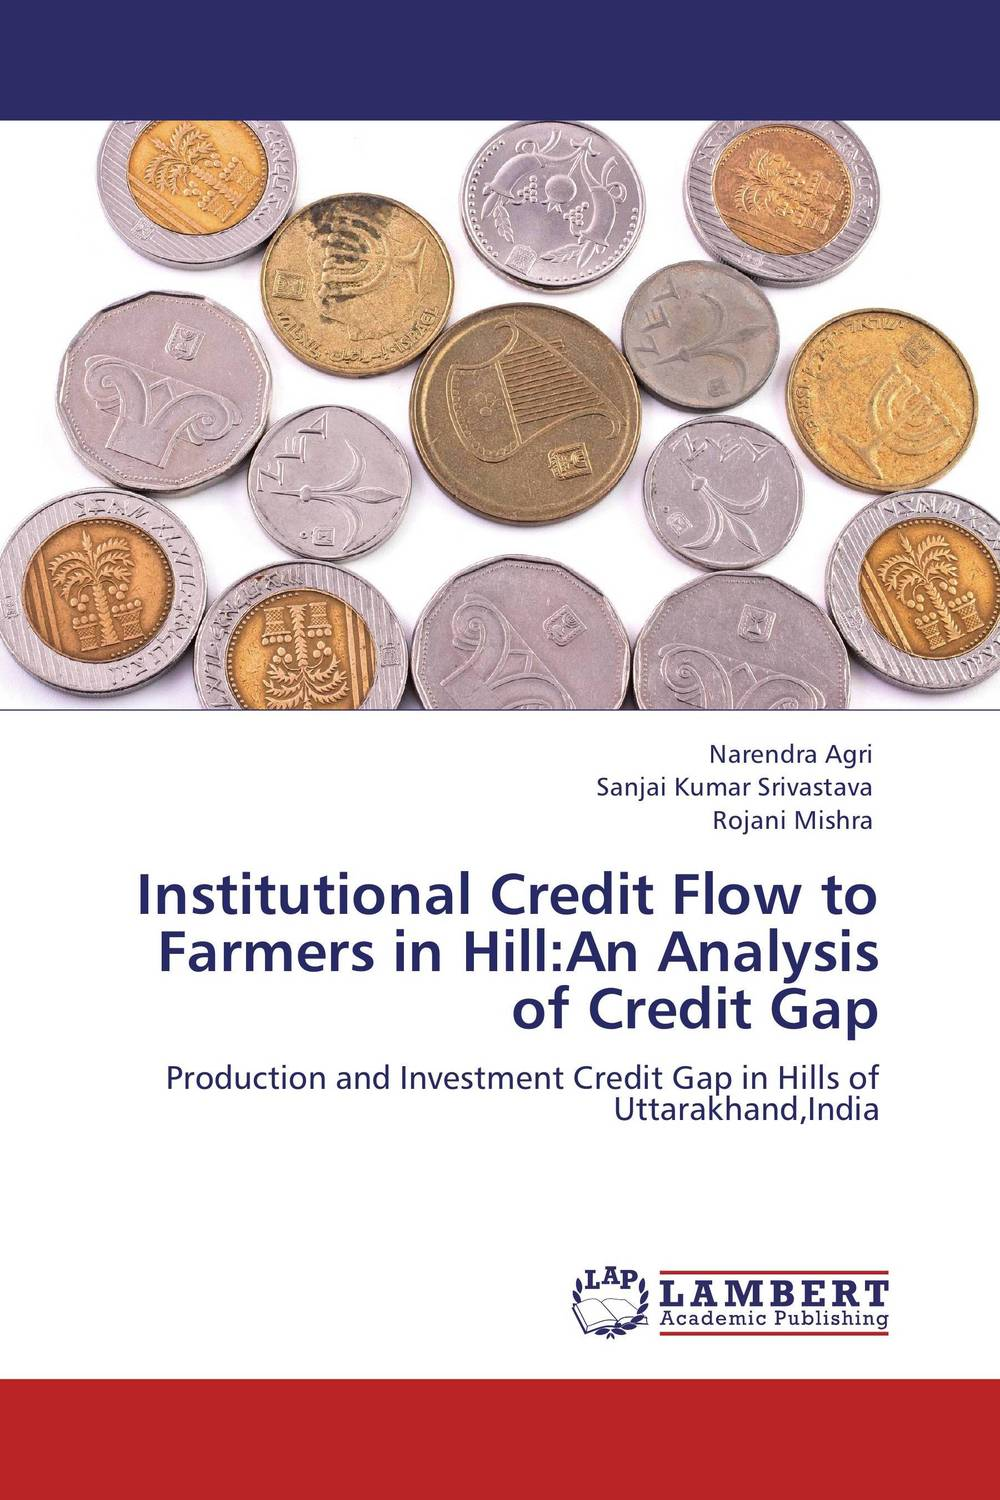 Institutional Credit Flow to Farmers in Hill:An Analysis of Credit Gap